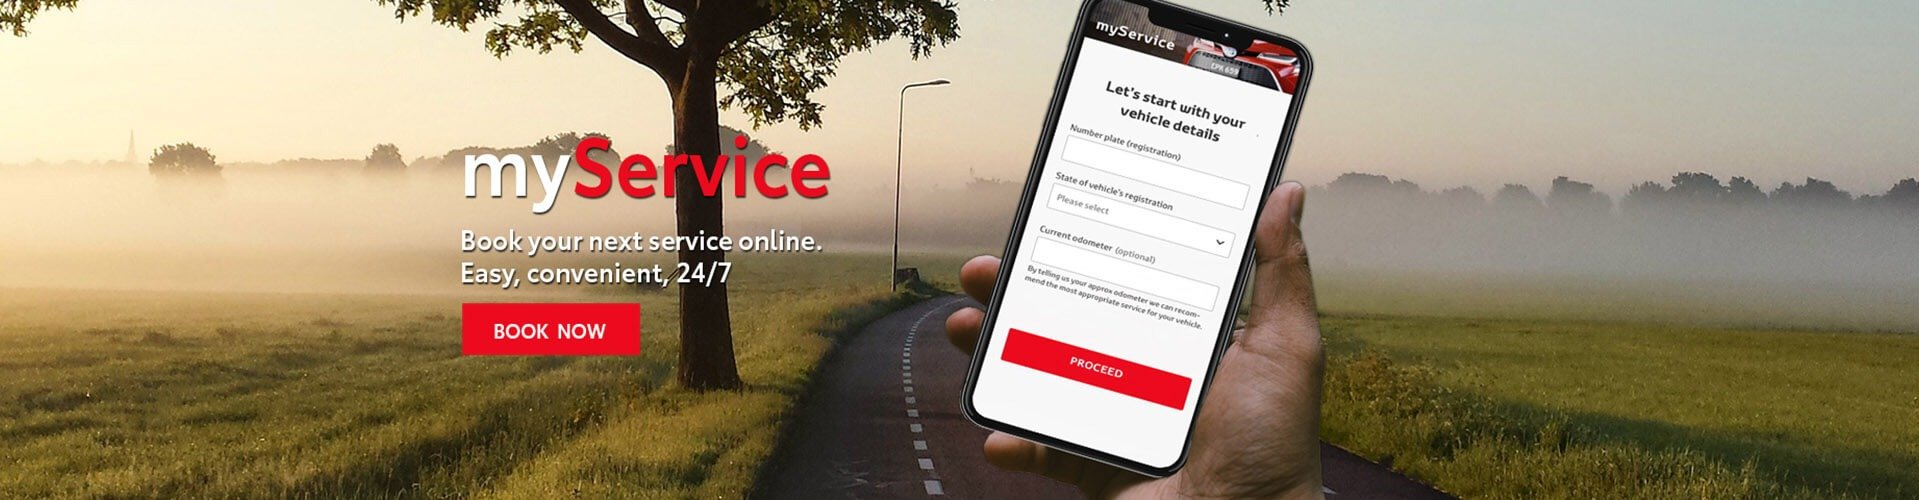 myService Online Service Booking - easy, convenient, 24/7